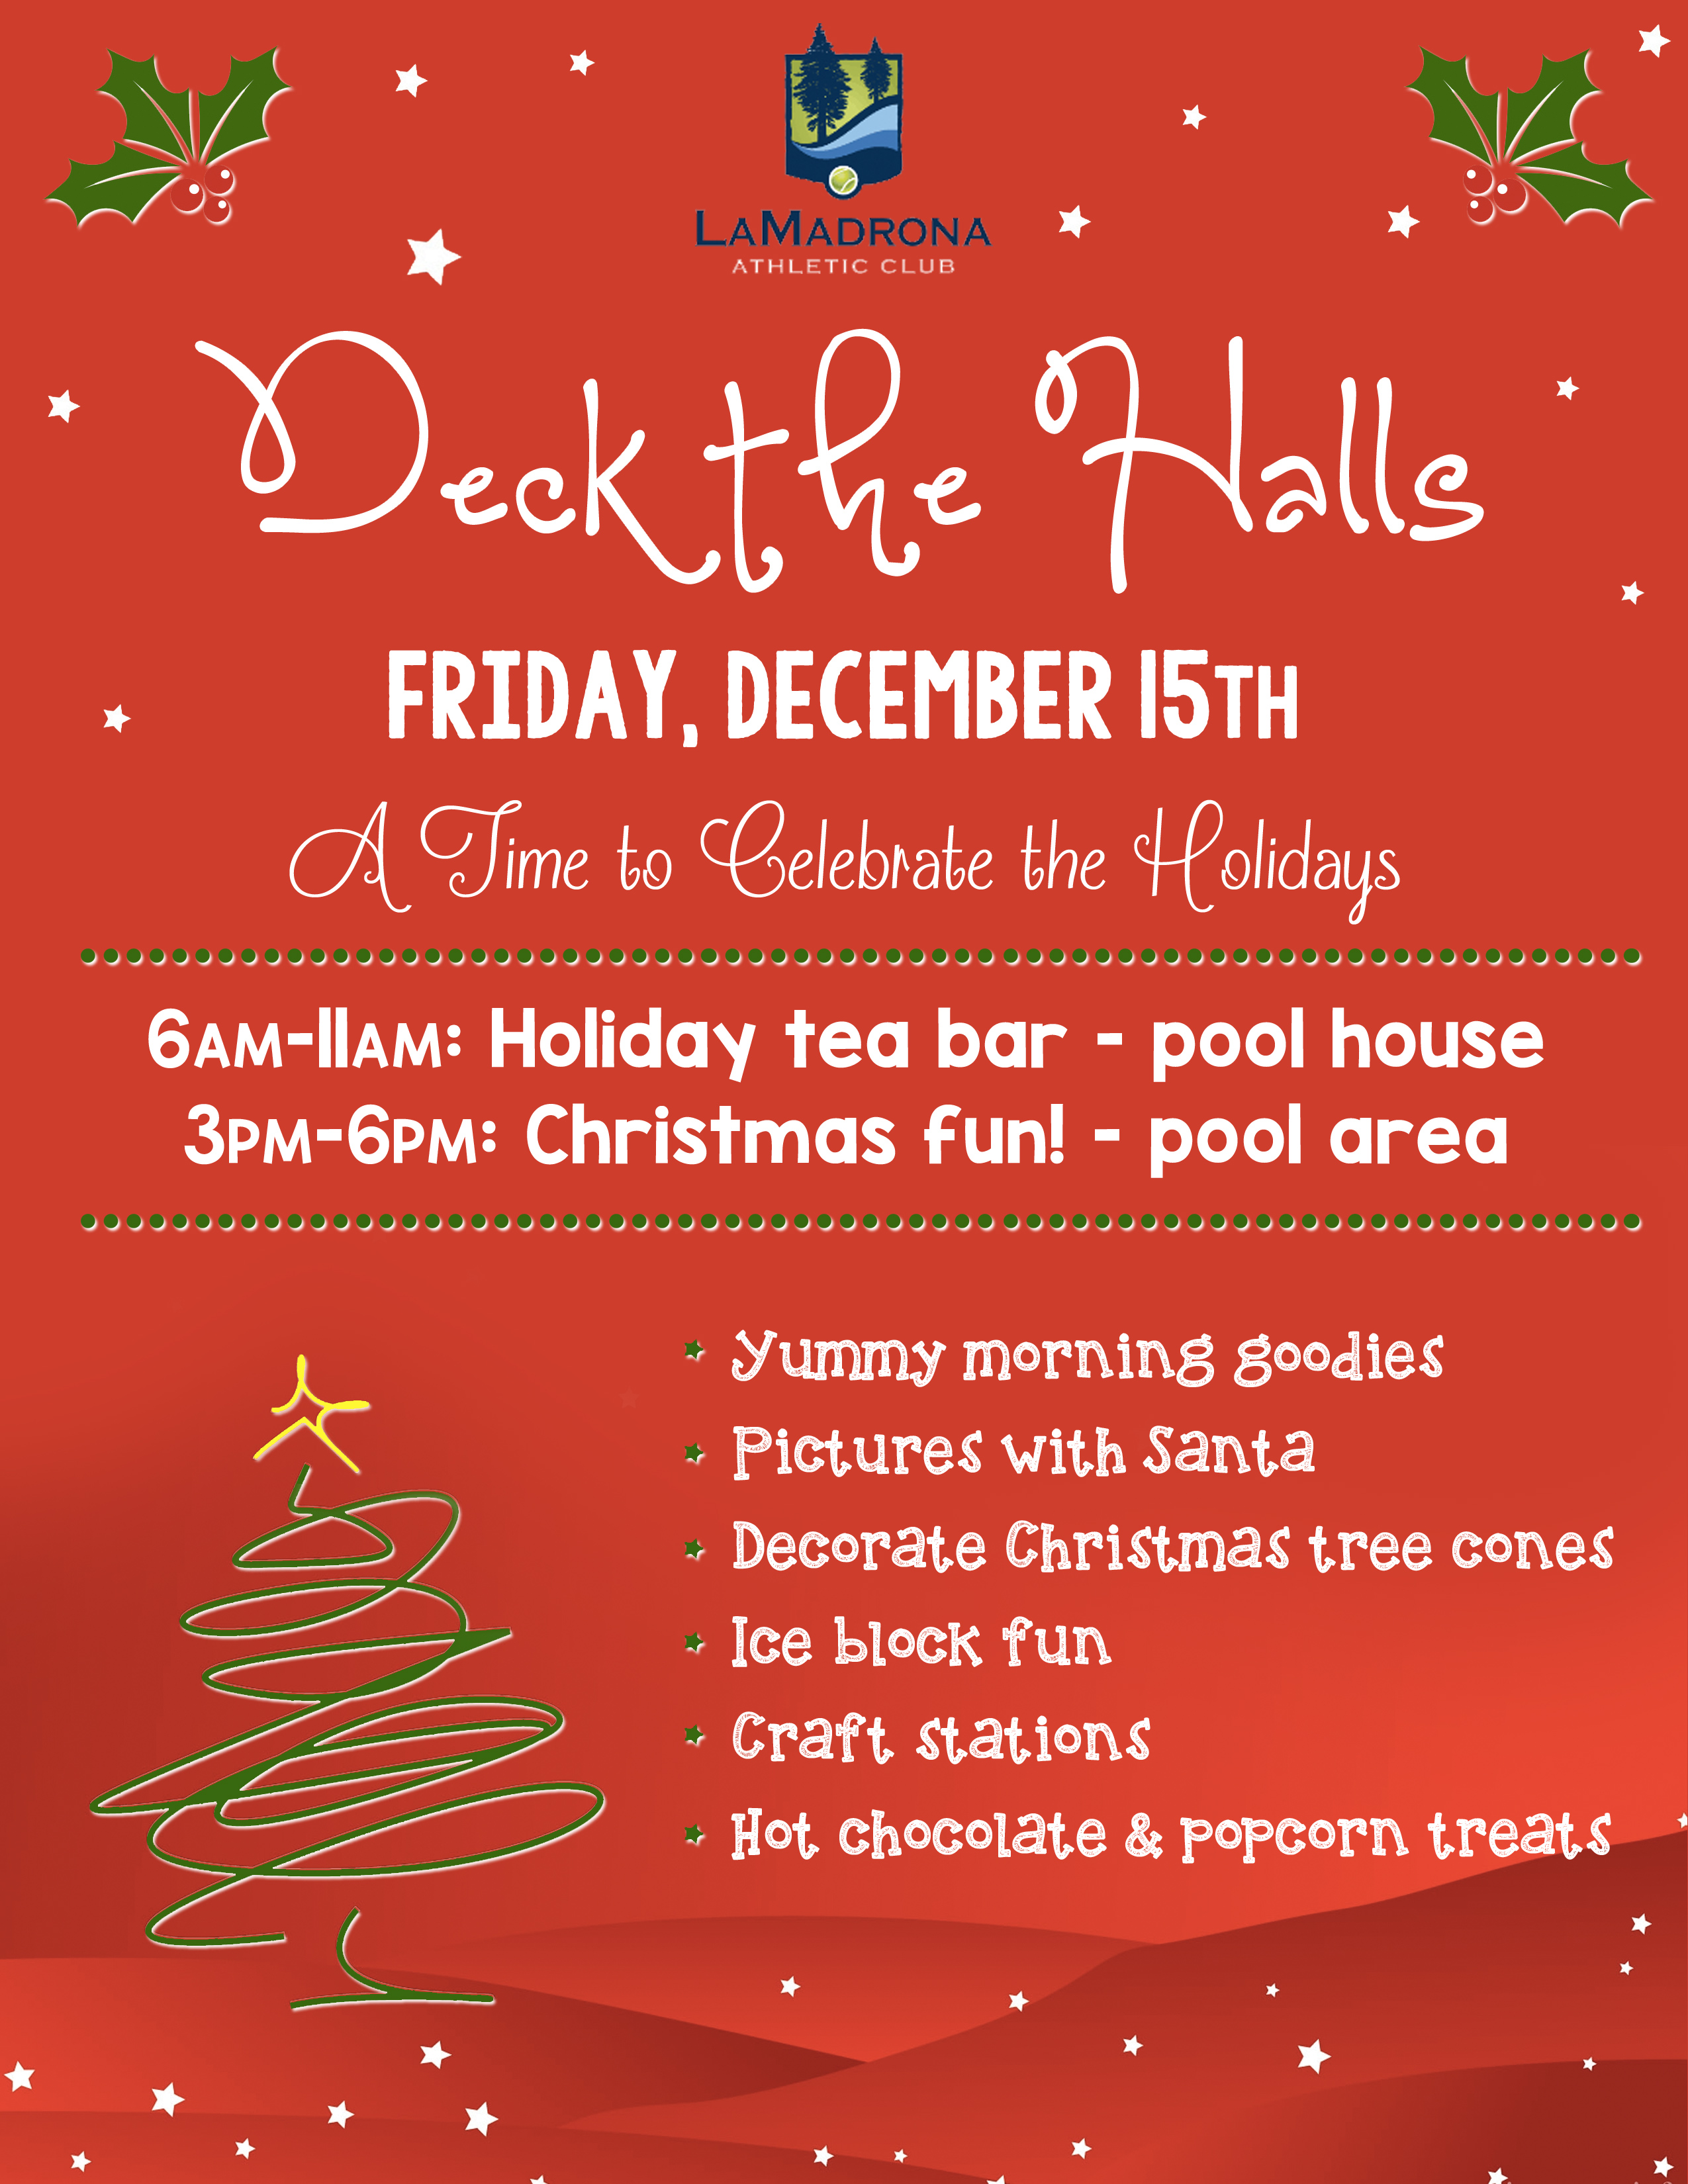 La madrona athletic club view announcement 1232017 december deck the halls event friday december 15th 1betcityfo Images